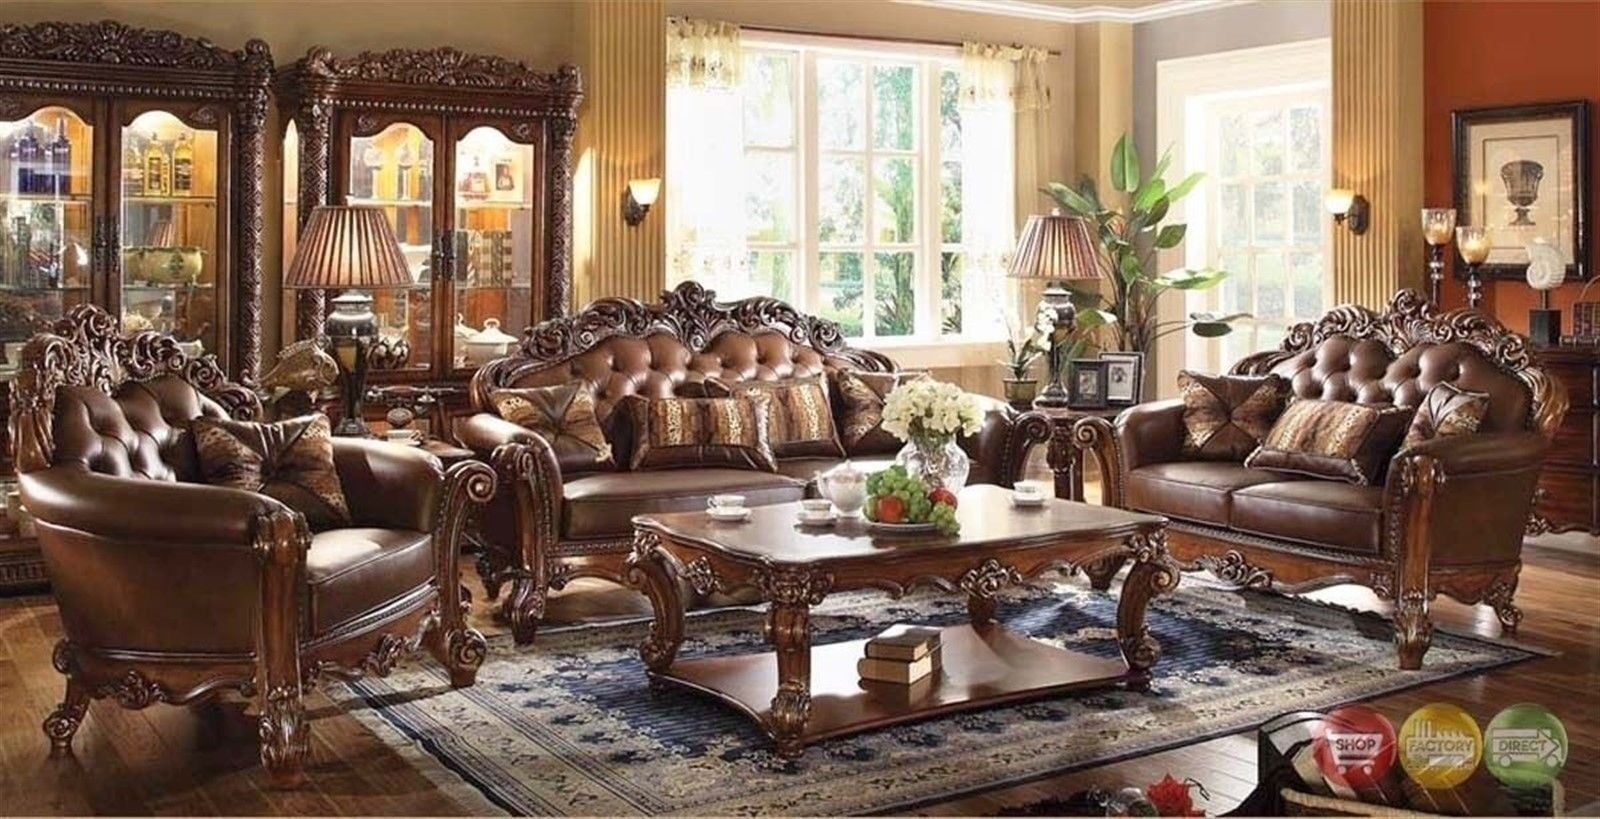 Details about Vendome Traditional Dark Wood 3pc Formal Living Room Set Sofa  Loveseat & Chair